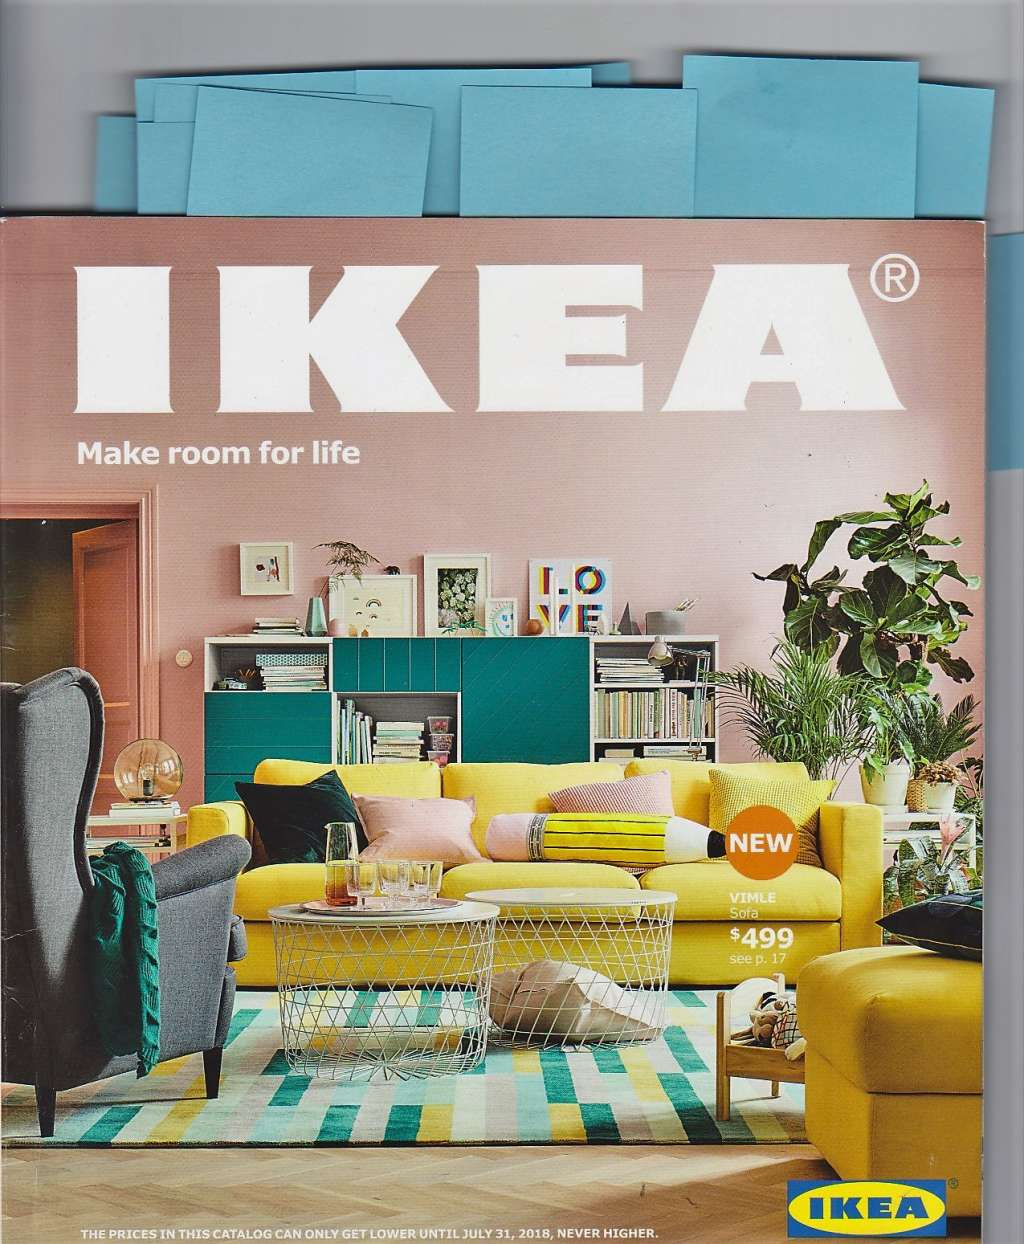 ikea 2018 catalog sneak peek 10 products we 39 re excited about kitchn. Black Bedroom Furniture Sets. Home Design Ideas